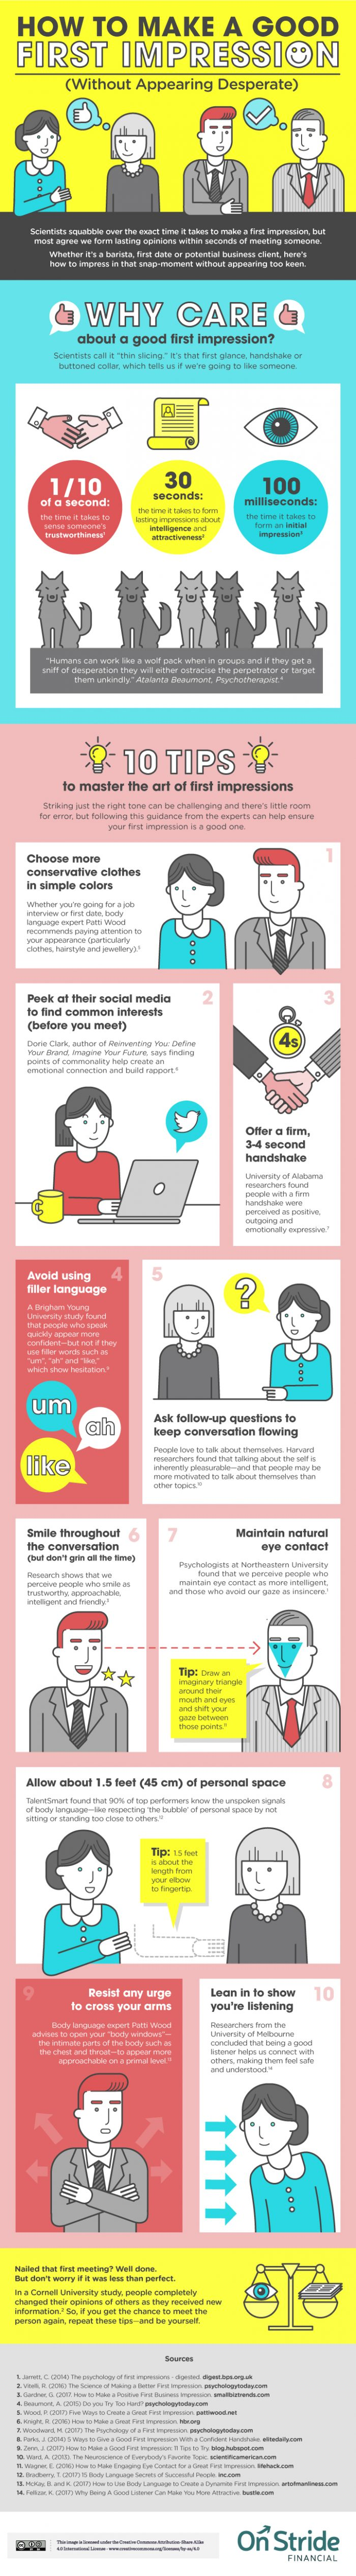 infographic-how-to-make-a-good-first-impression-700x5065